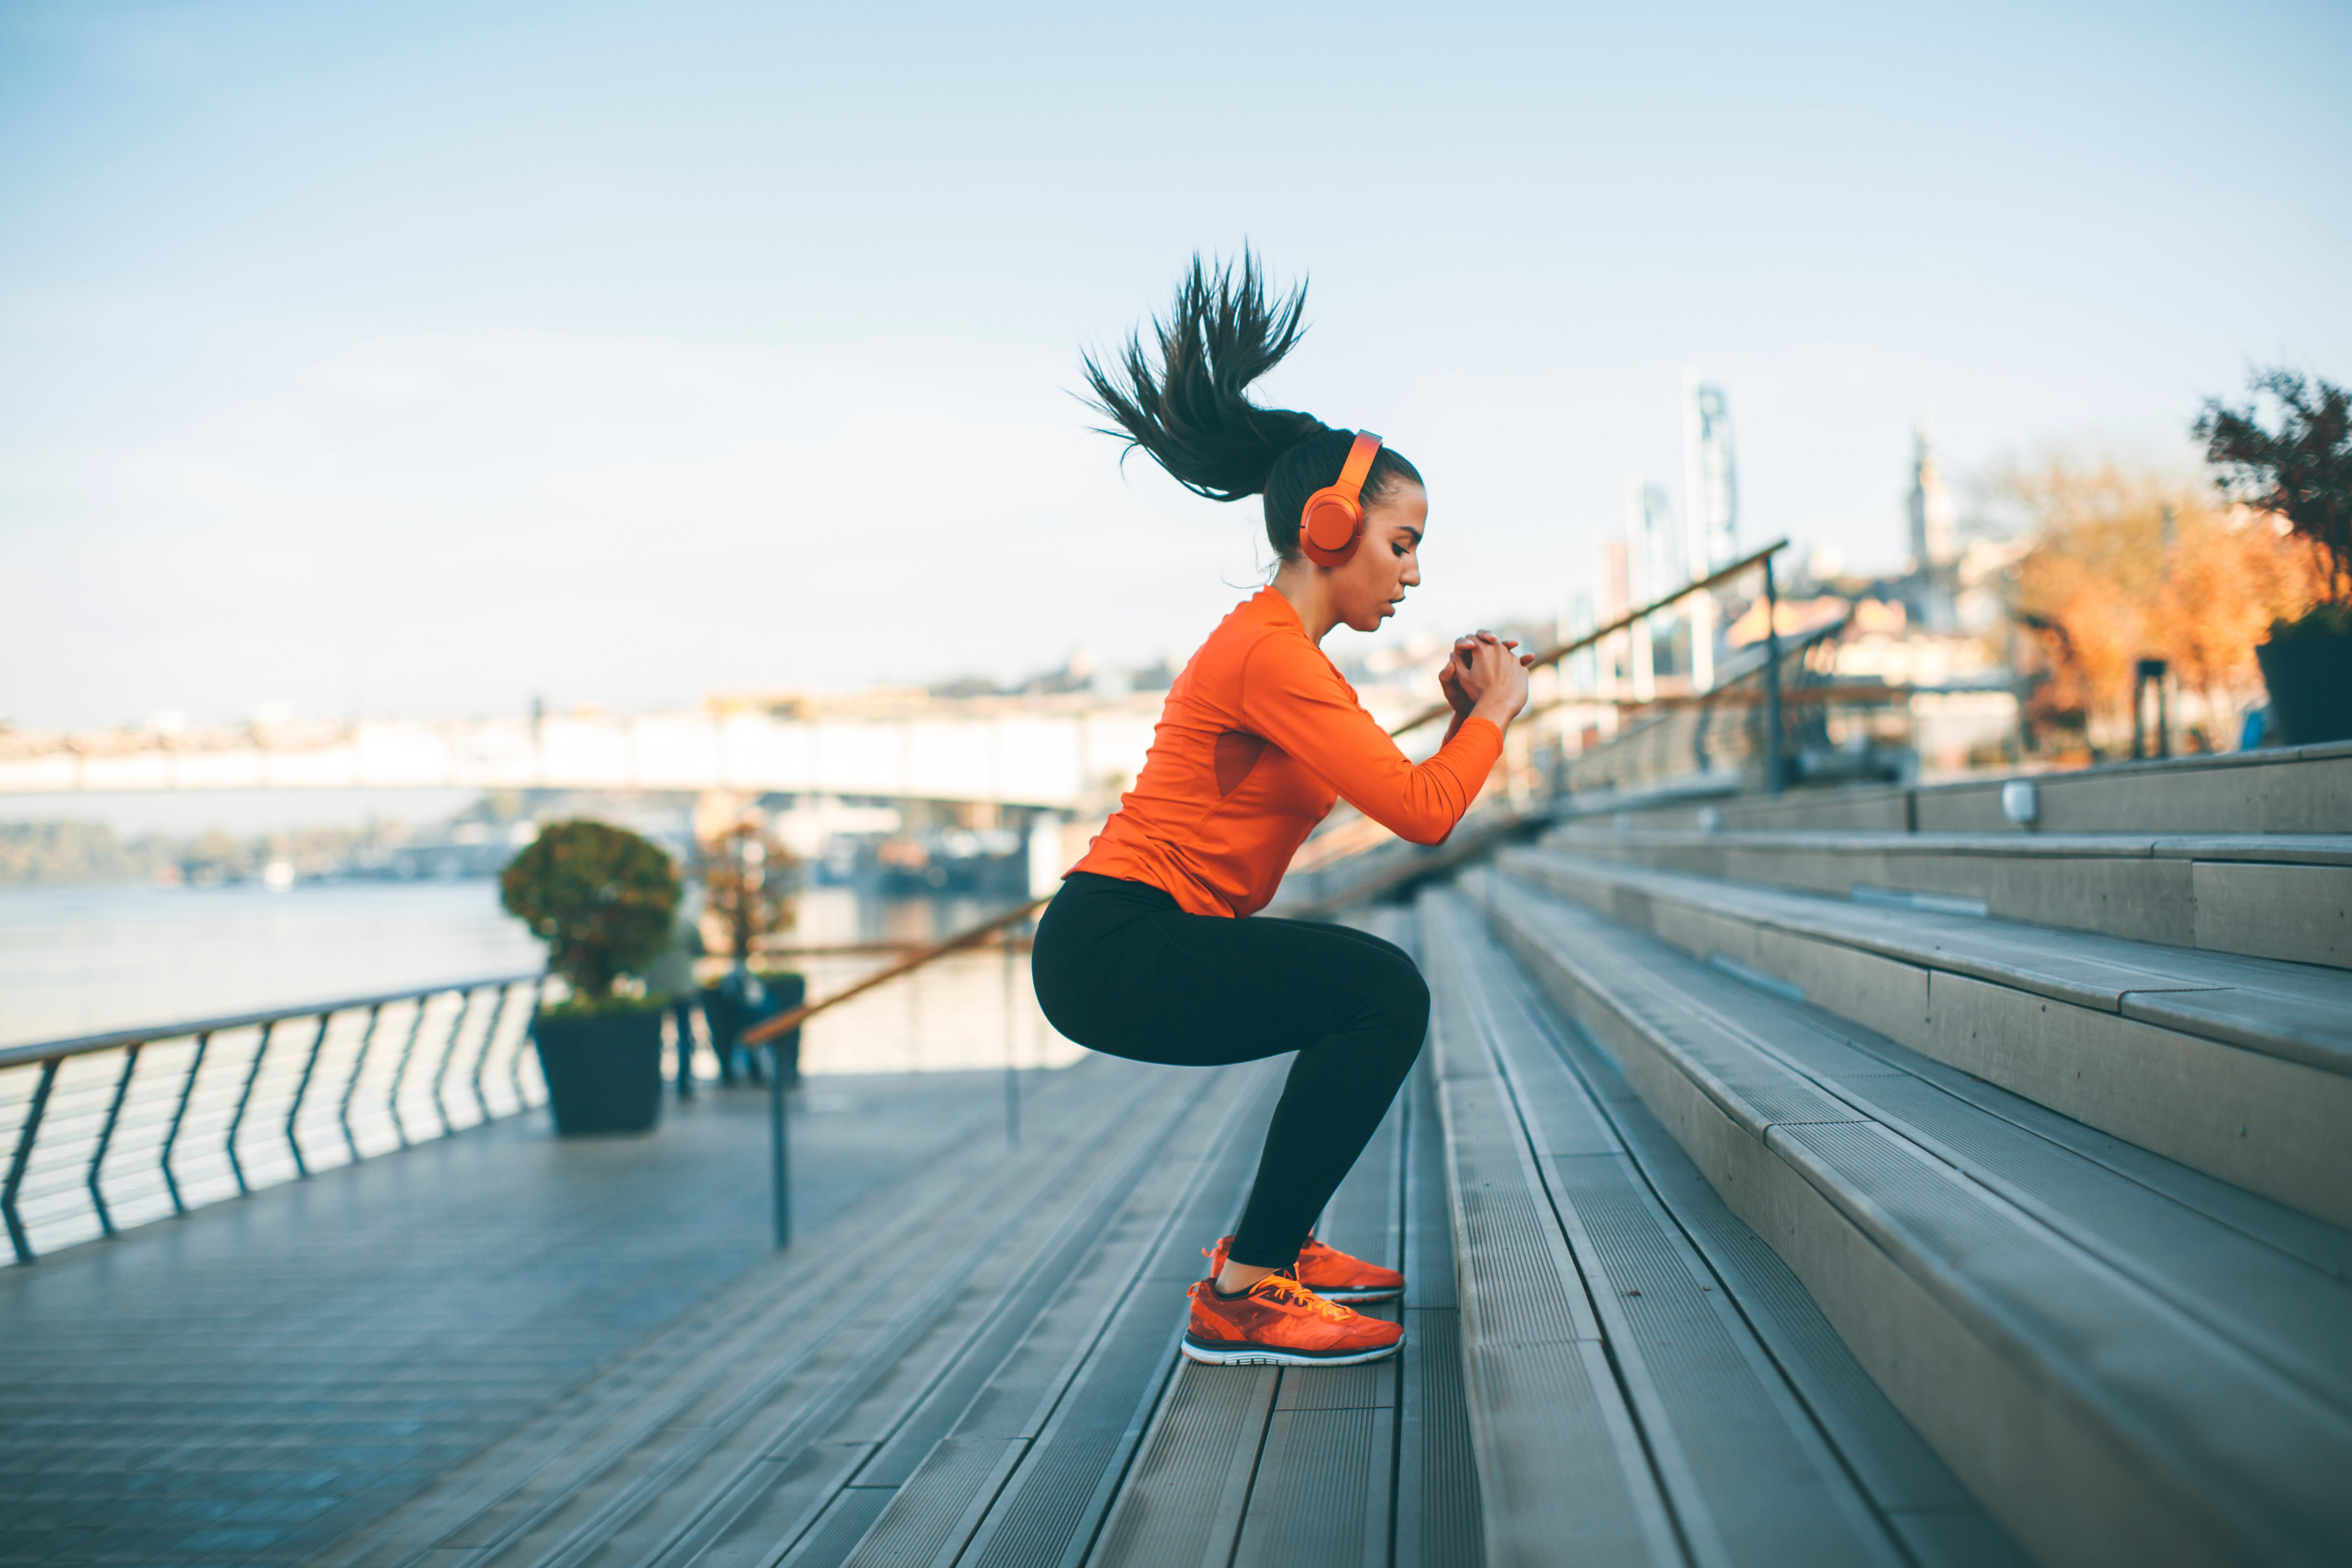 There is plenty of room outside to go exercise A habit of short bursts of exercise can have a notable impact on your mental function later in life. (Goran Bogicevic/Shutterstock)